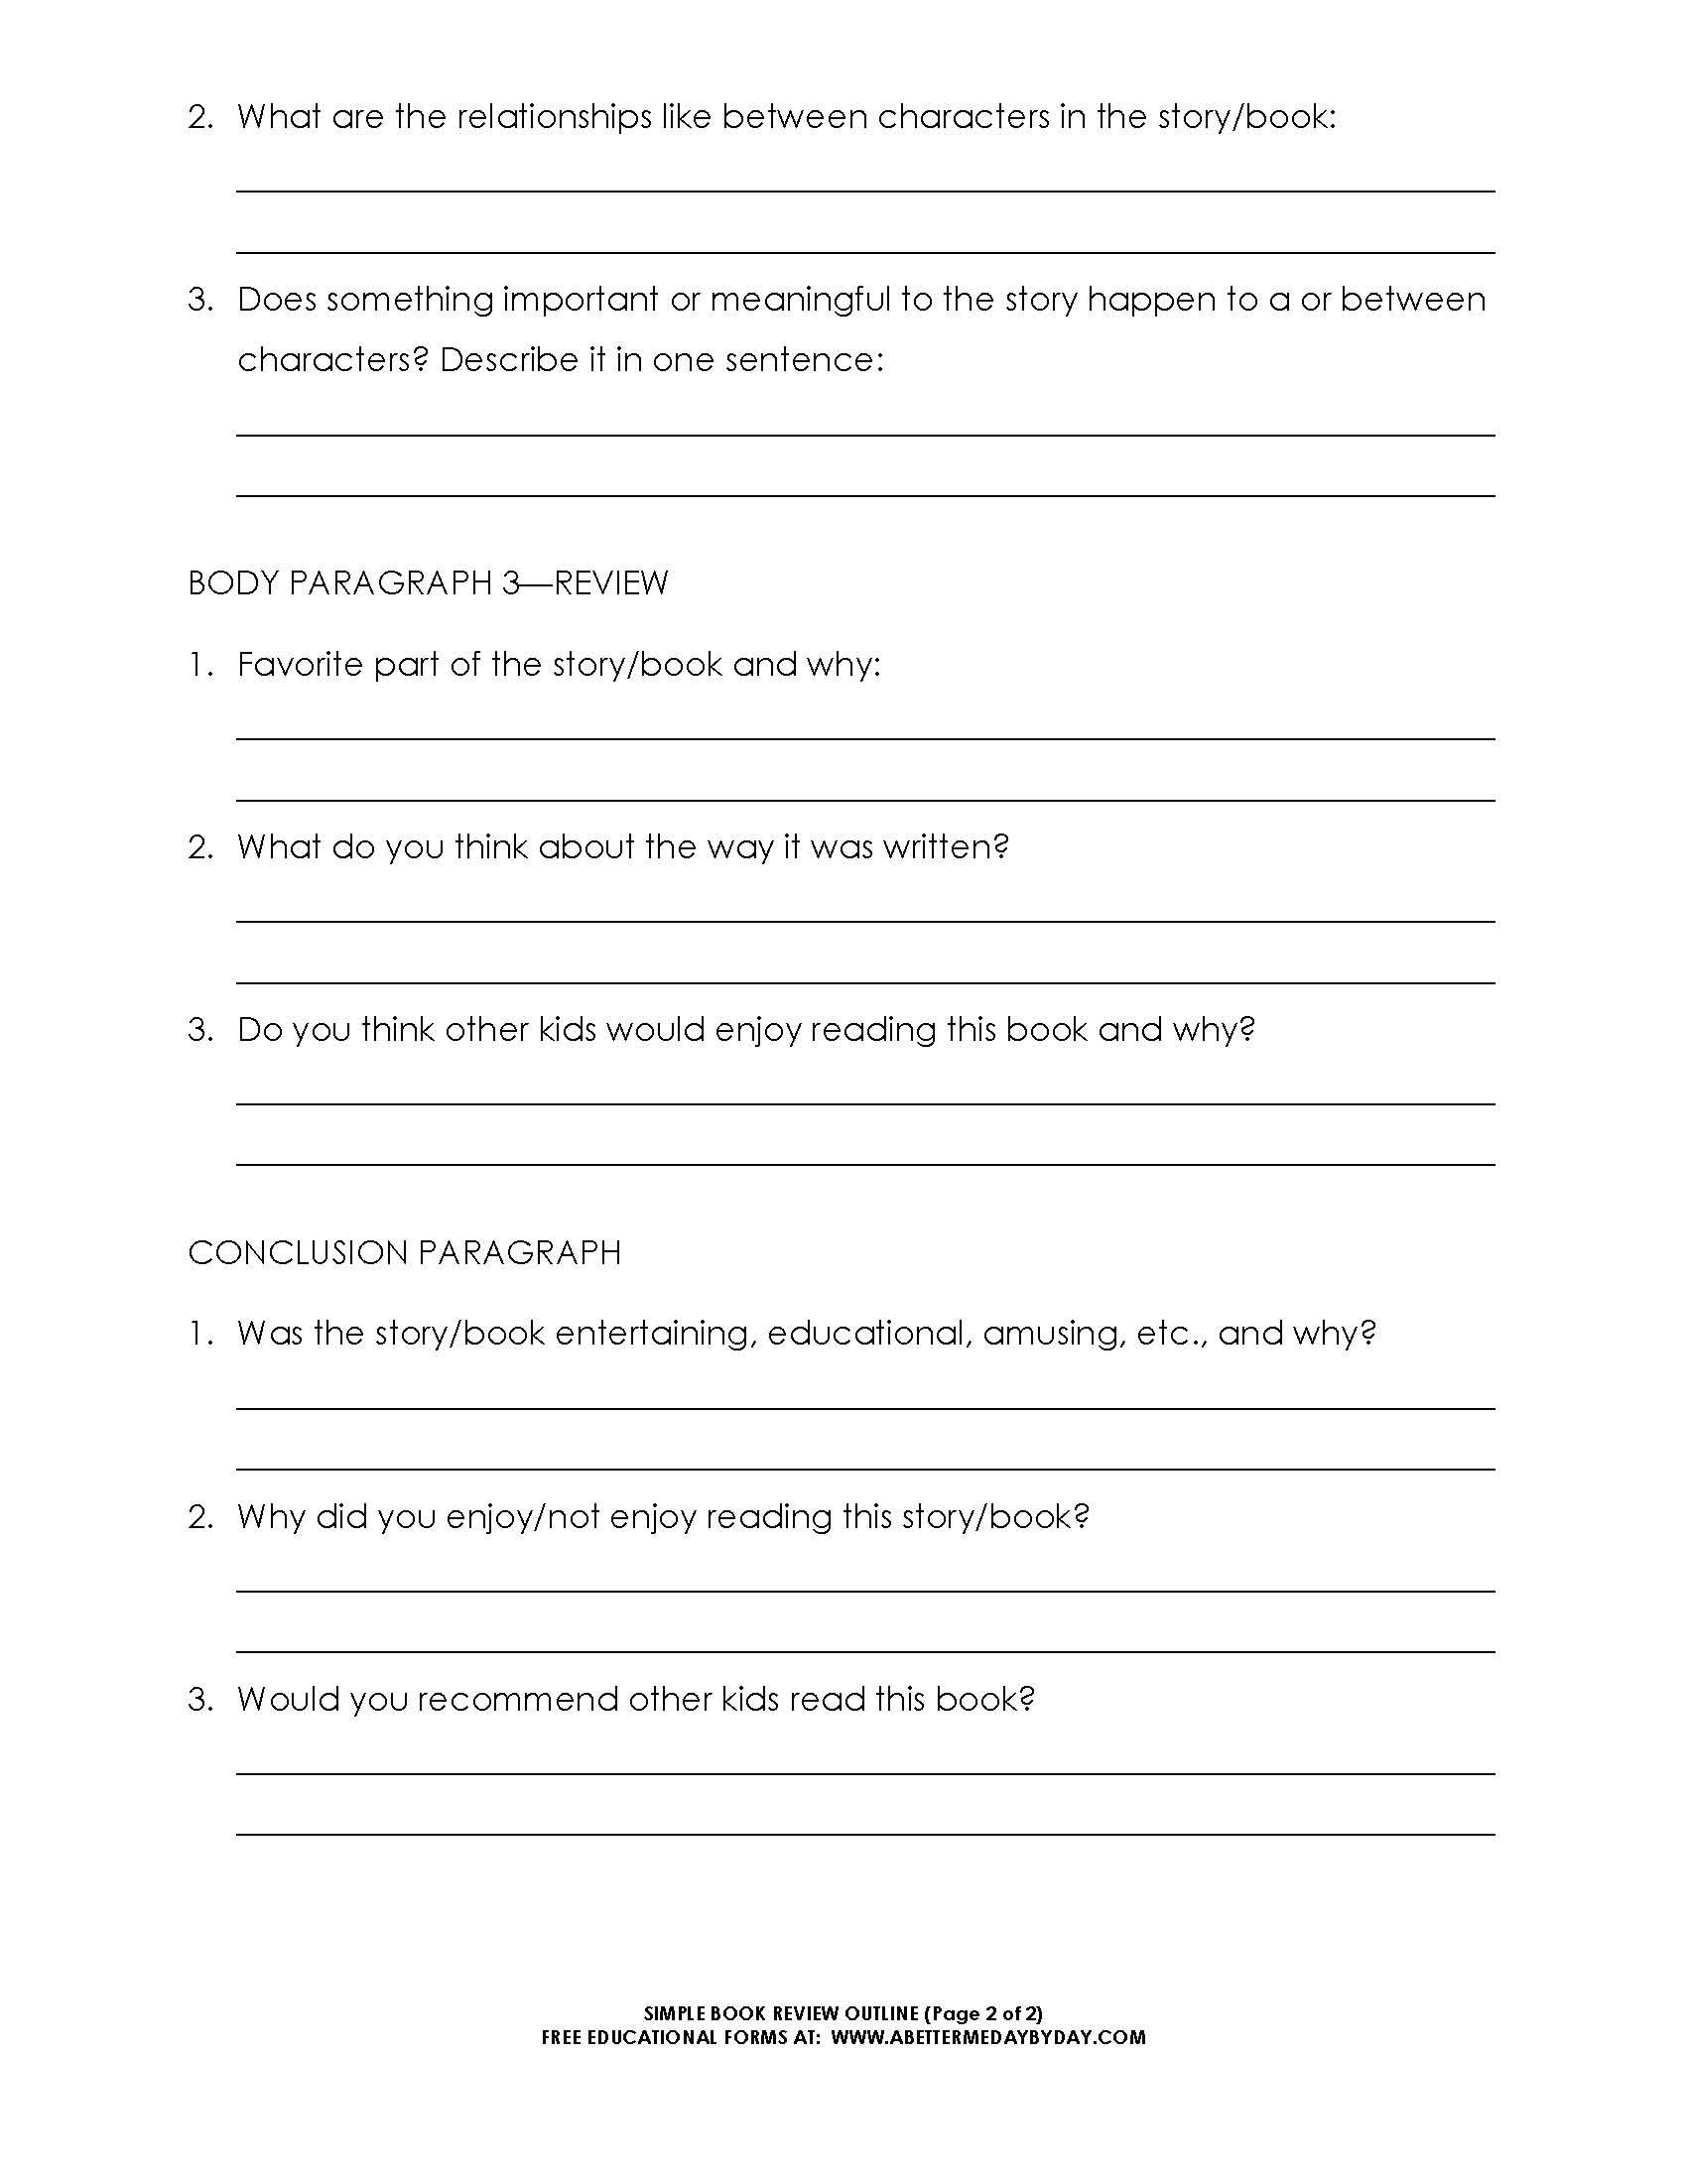 simple 5 paragraph book review or report outline form book the outline my 10 year old son uses to write book reviews page 2